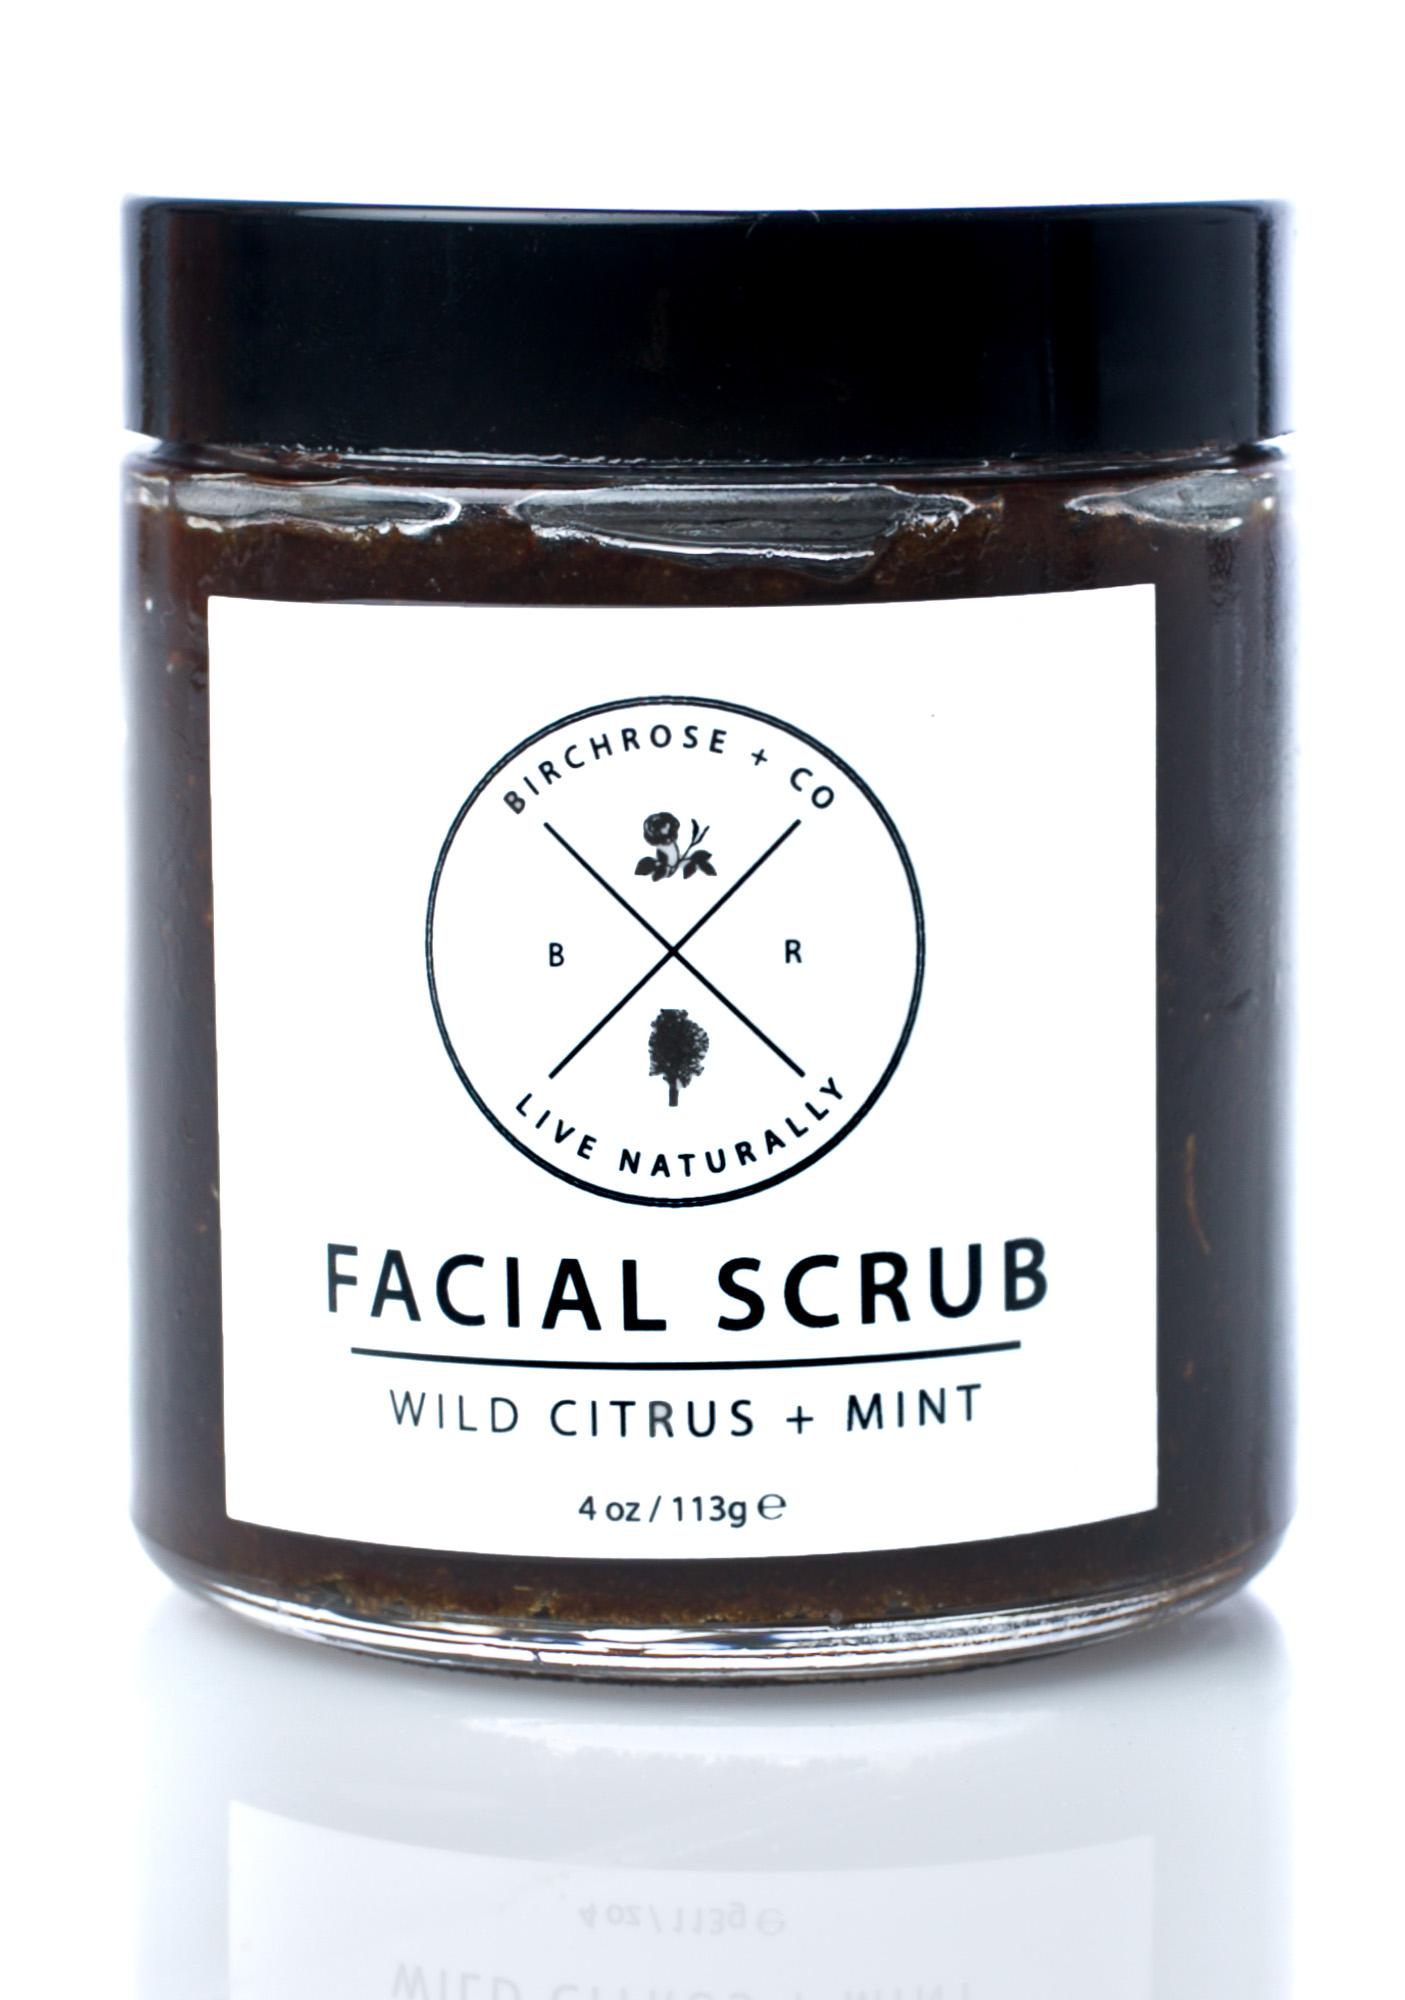 Birchrose + Co Wild Citrus + Mint Facial Scrub